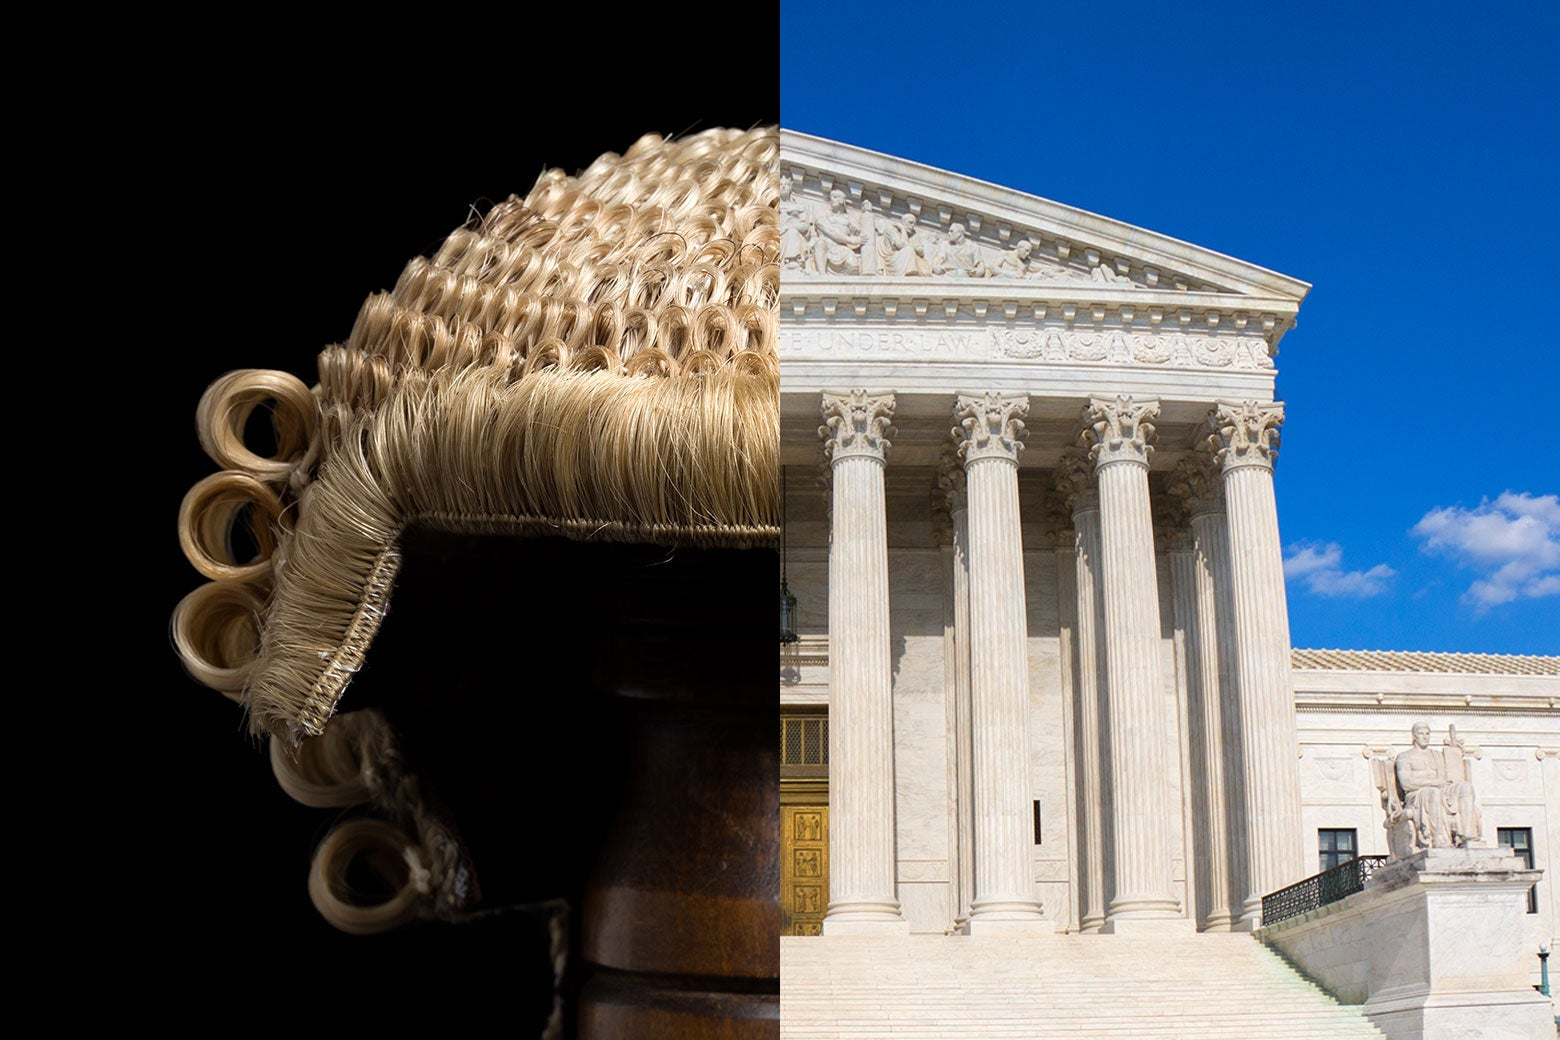 A diptych of a barrister's wig and the U.S. Supreme Court building.